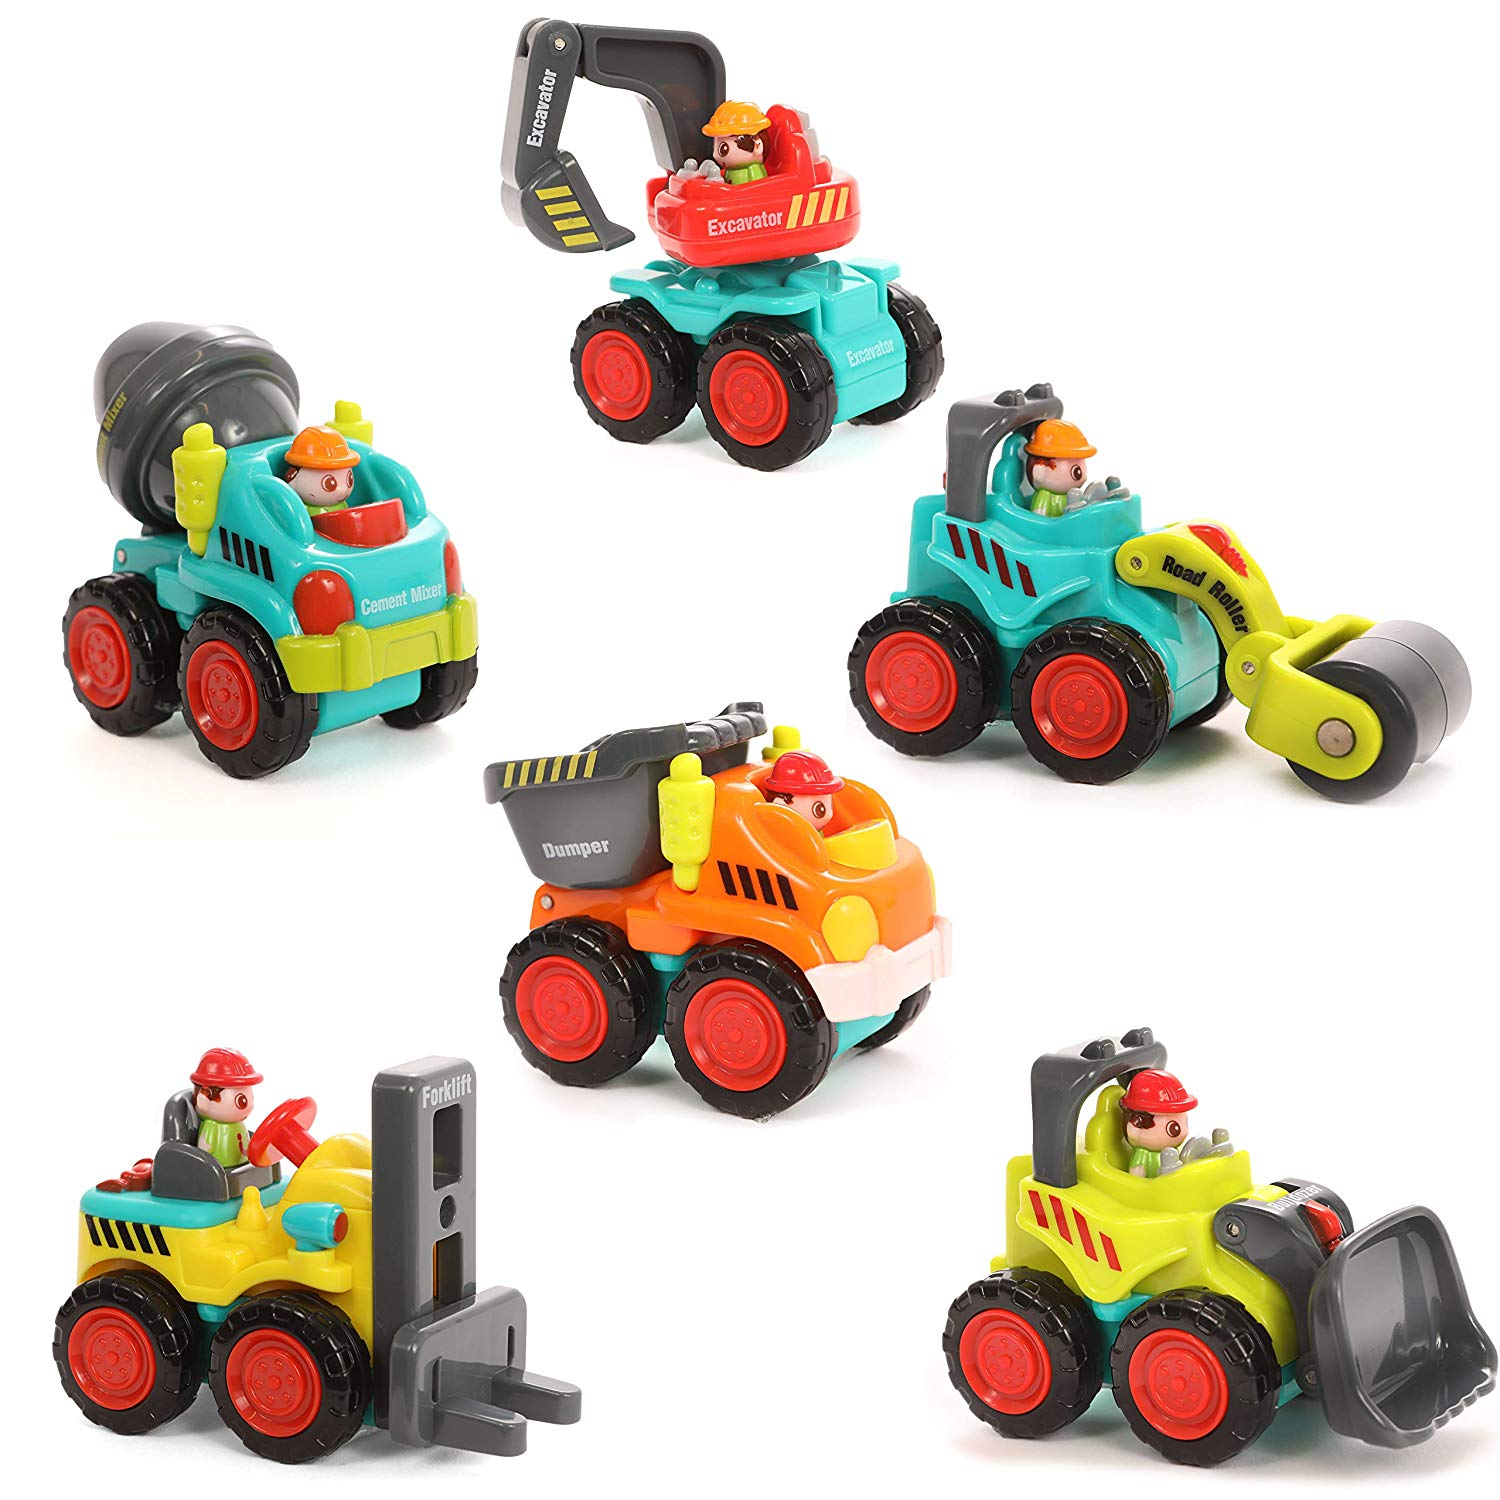 Set of 6 City Construction Vehicles, with a Bulldozer, Excavator, Dump Truck, Cement Truck, Forklift and Road Paver